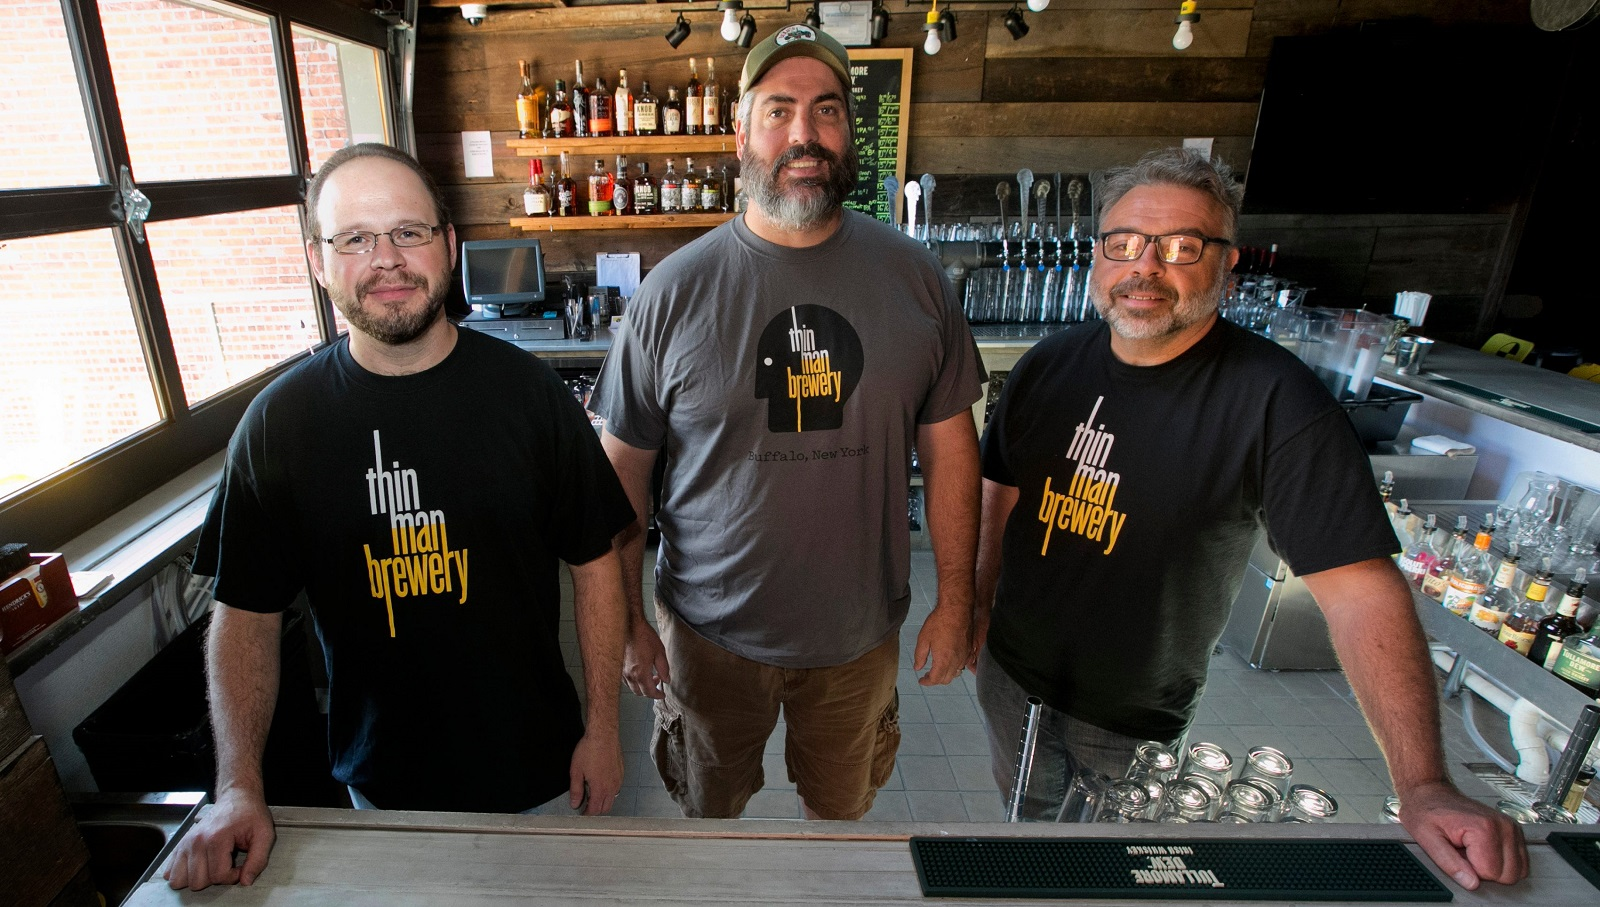 Thin Man Brewing's Rudy Watkins, left, pictured with owner Mike Shatzel and GM Mike Piganowski, will continue a focus on hoppy beers. (John Hickey/Buffalo News file photo)